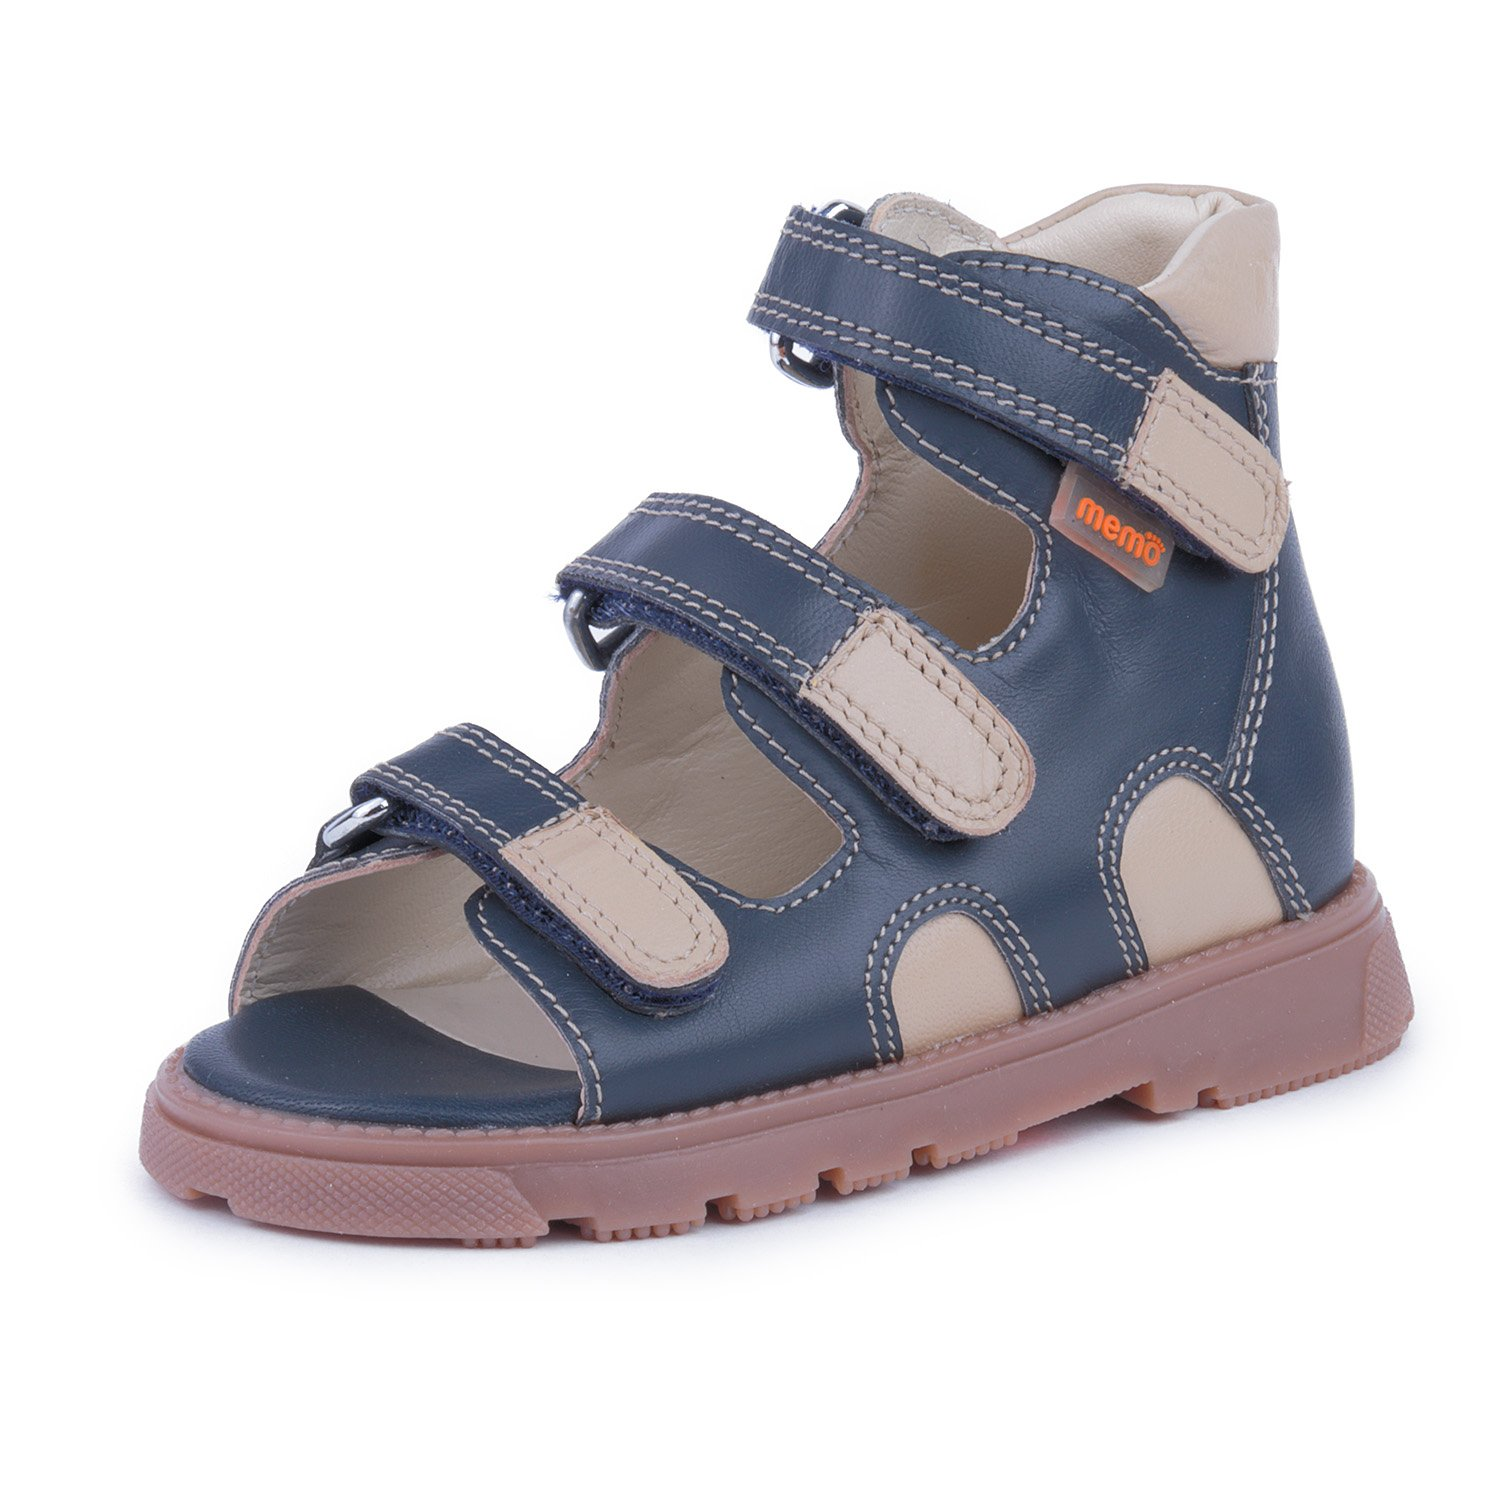 Memo Apollo 3DA Boy's High-Top Ankle Support Orthopedic Leather Sandal, 23 (7T)